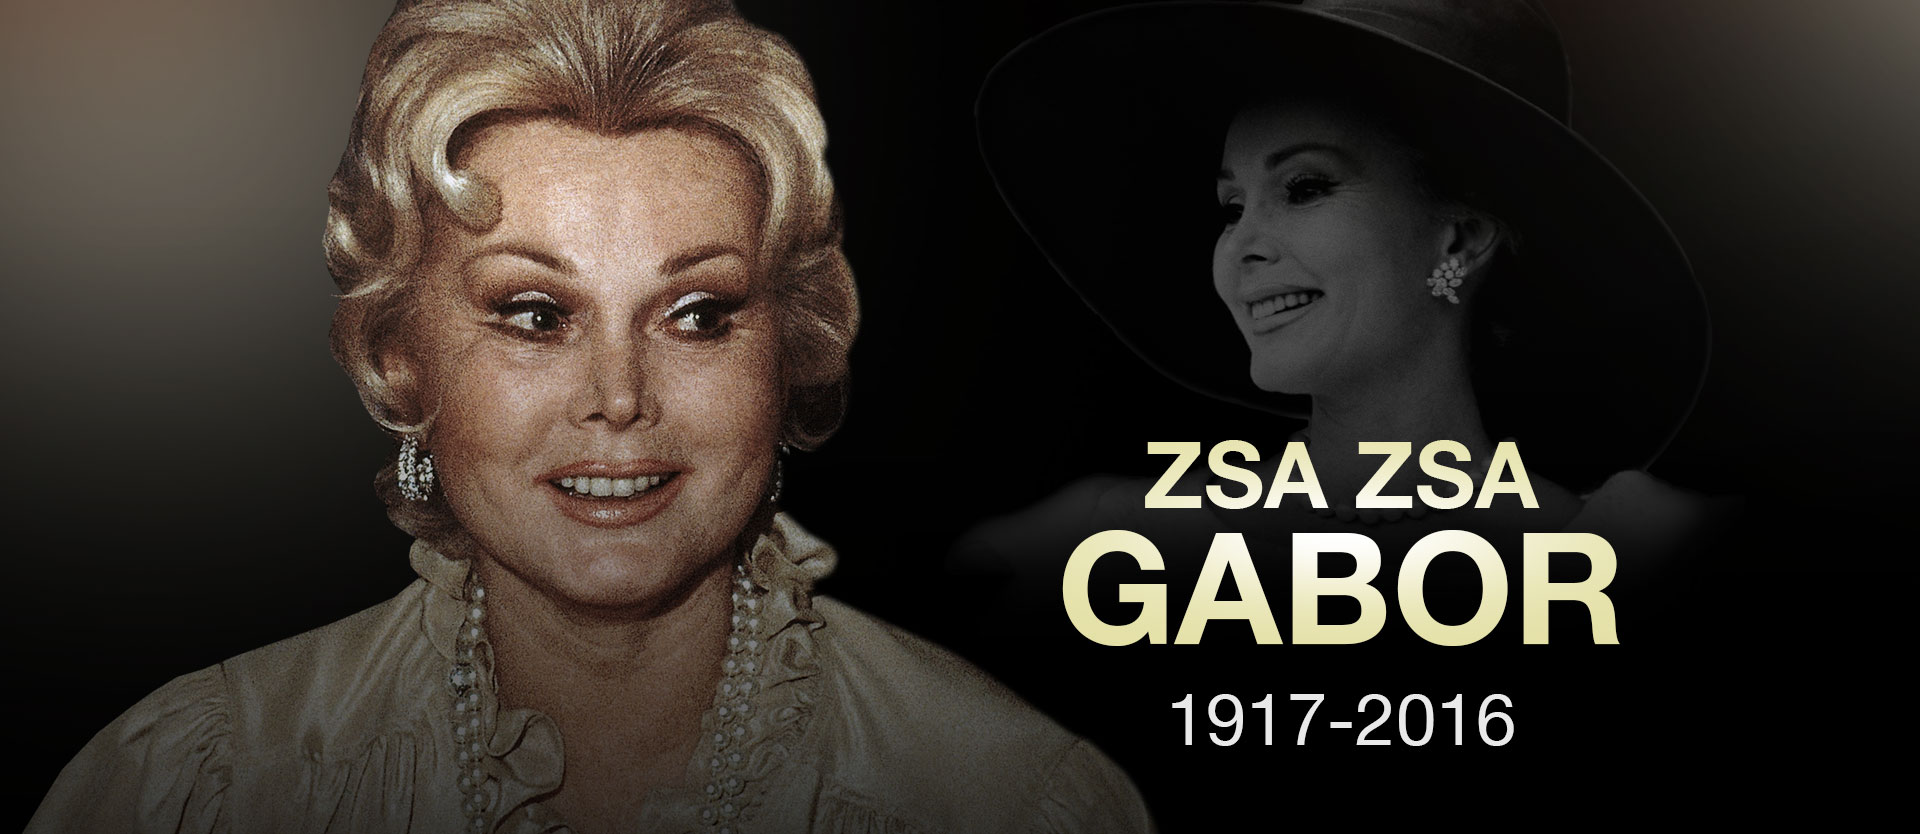 Zsa Zsa Gabor Quotes Zsa Zsa Gabor Dies At Age 99